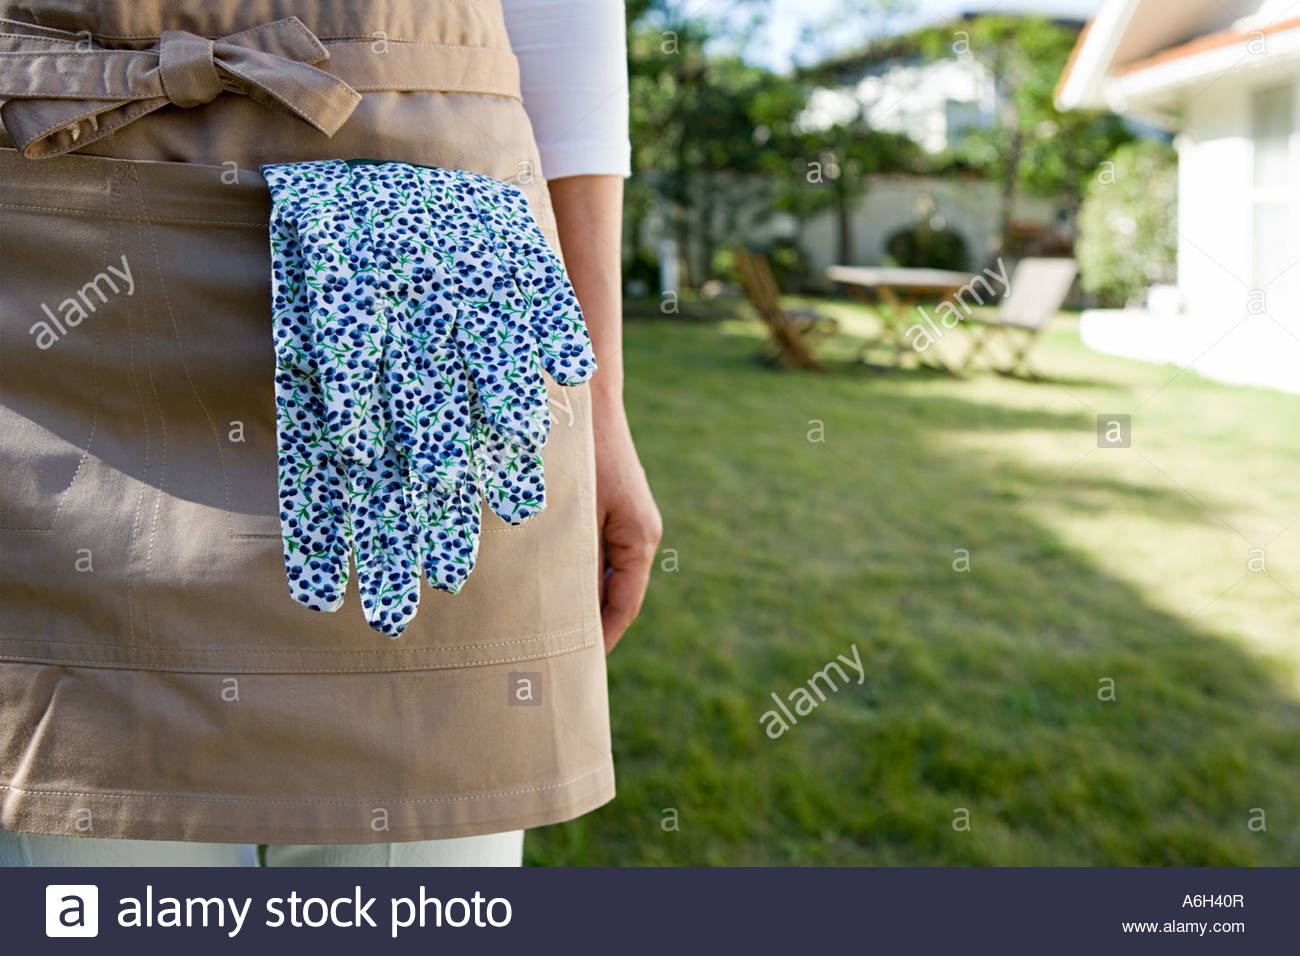 Gardening gloves in an apron pocket - Stock Image